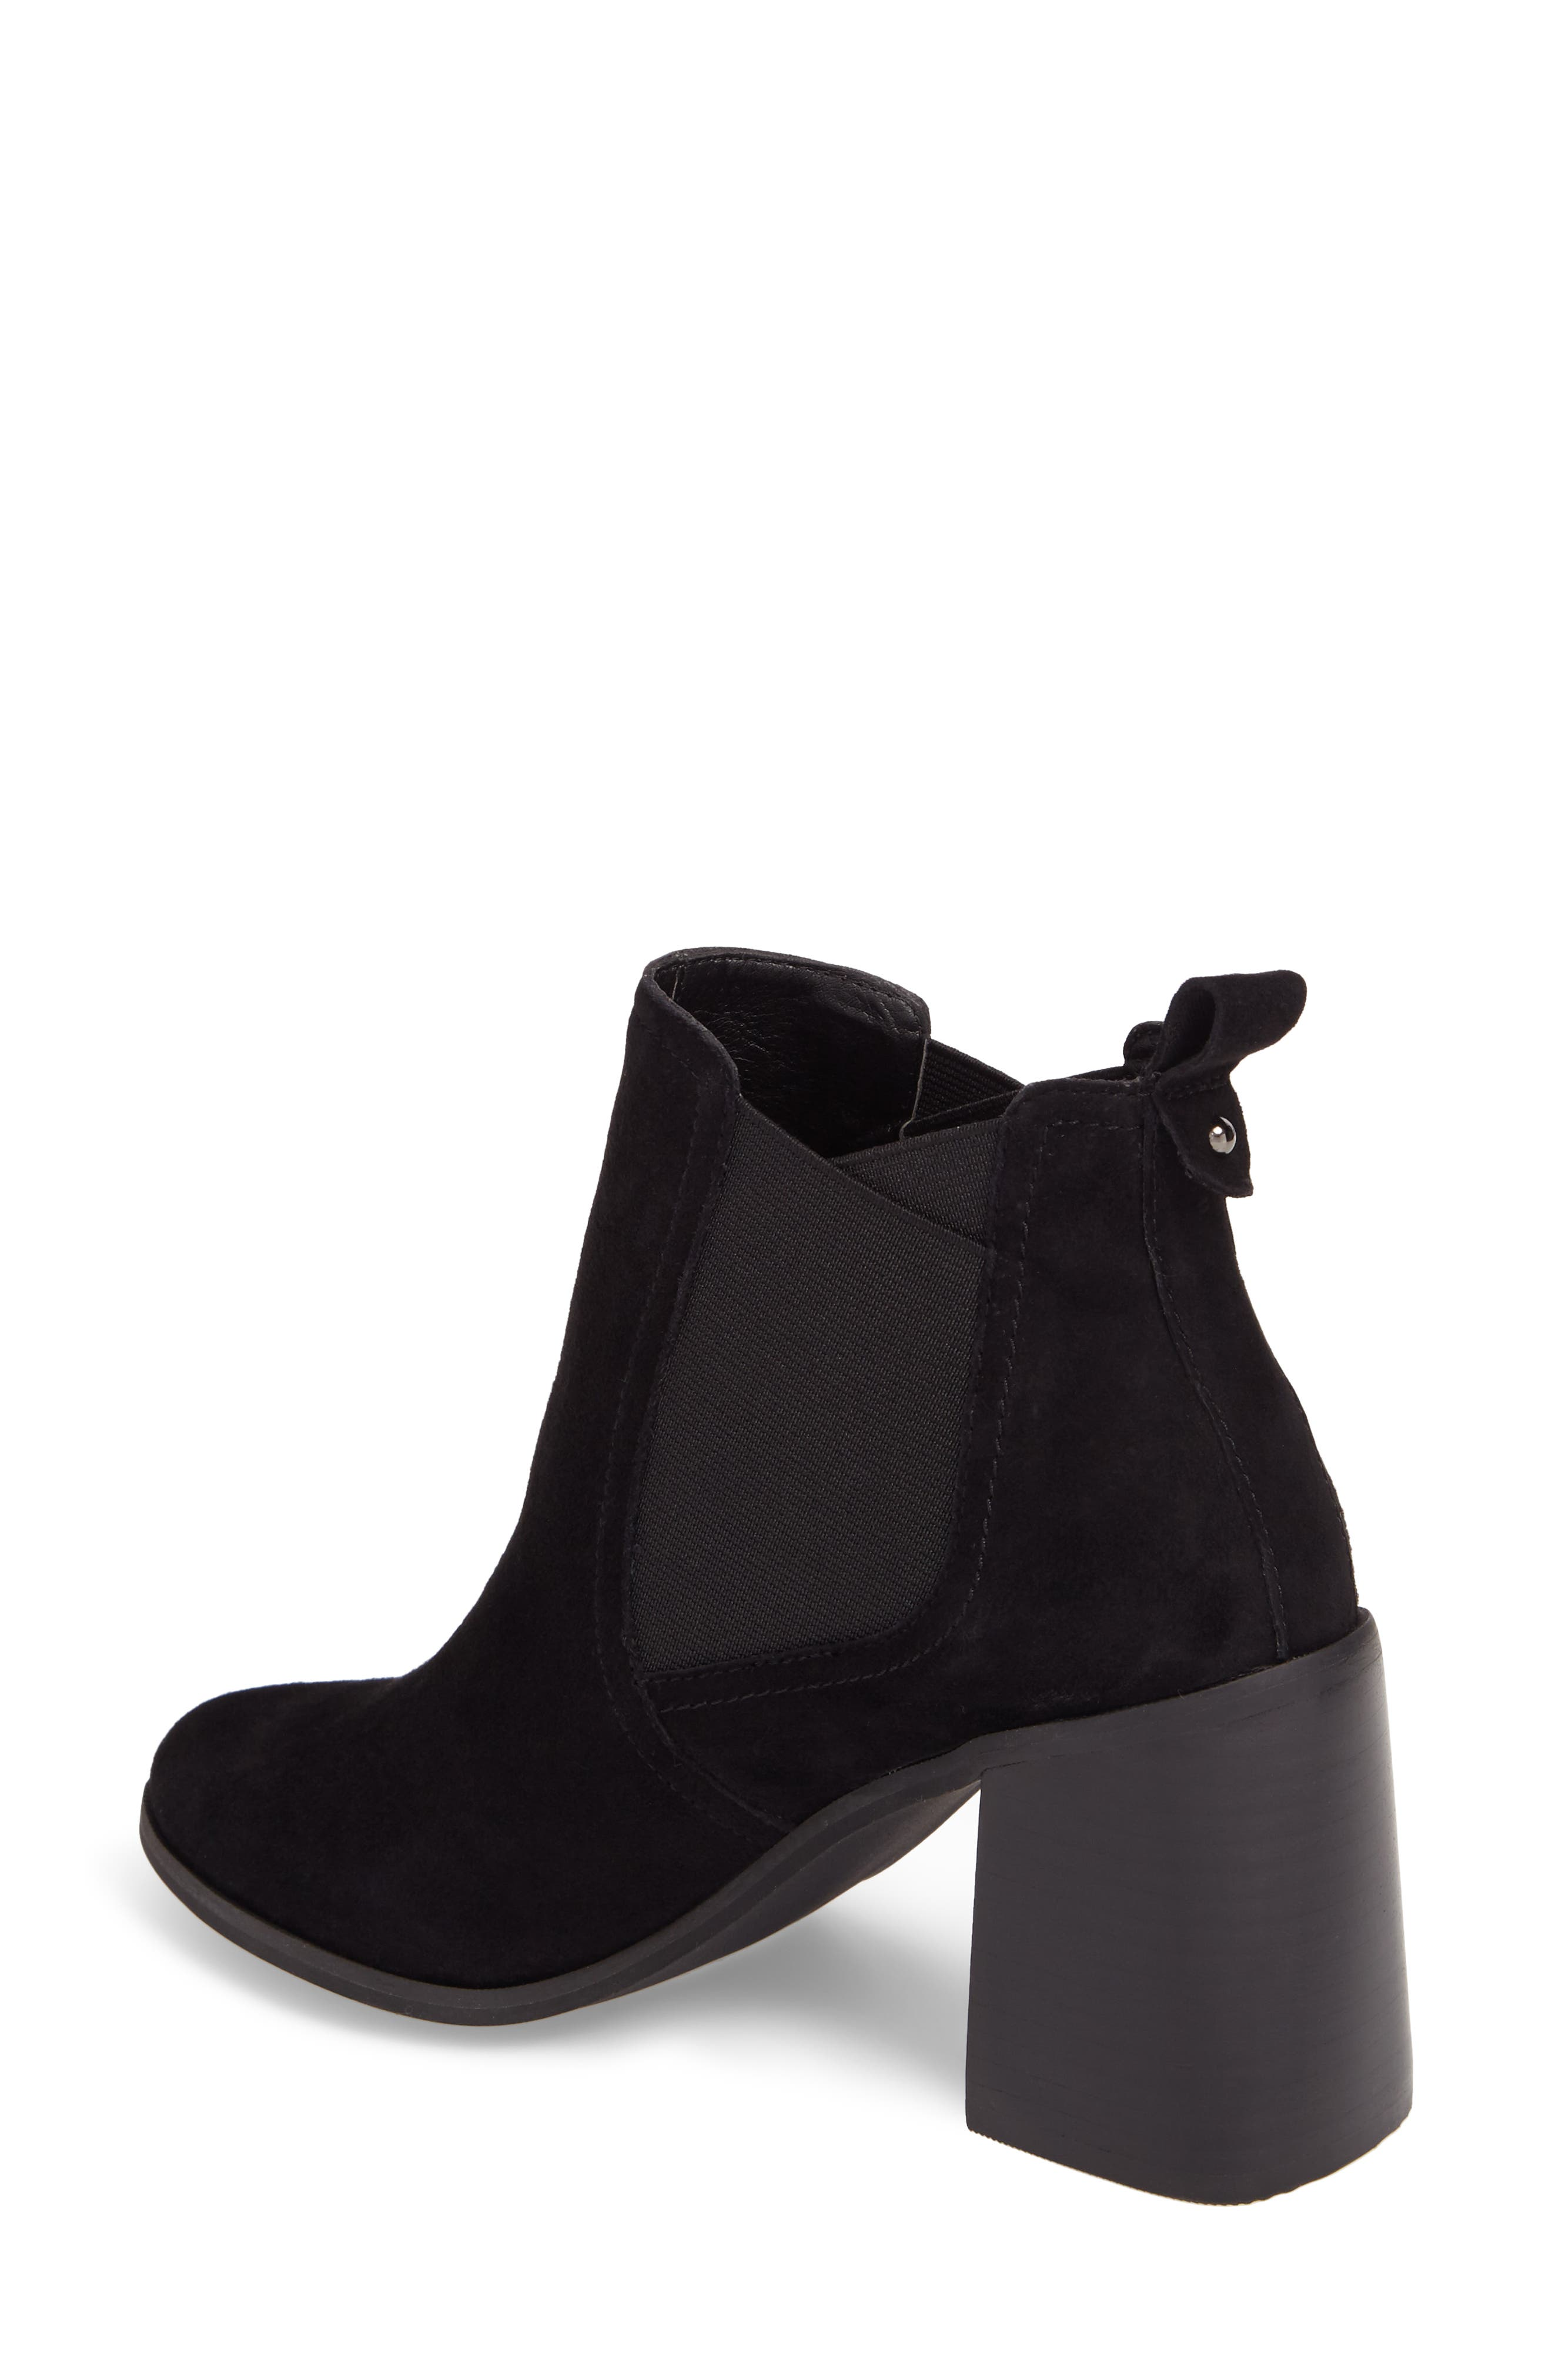 Quinn Flared Heel Chelsea Bootie,                             Alternate thumbnail 3, color,                             Black Suede